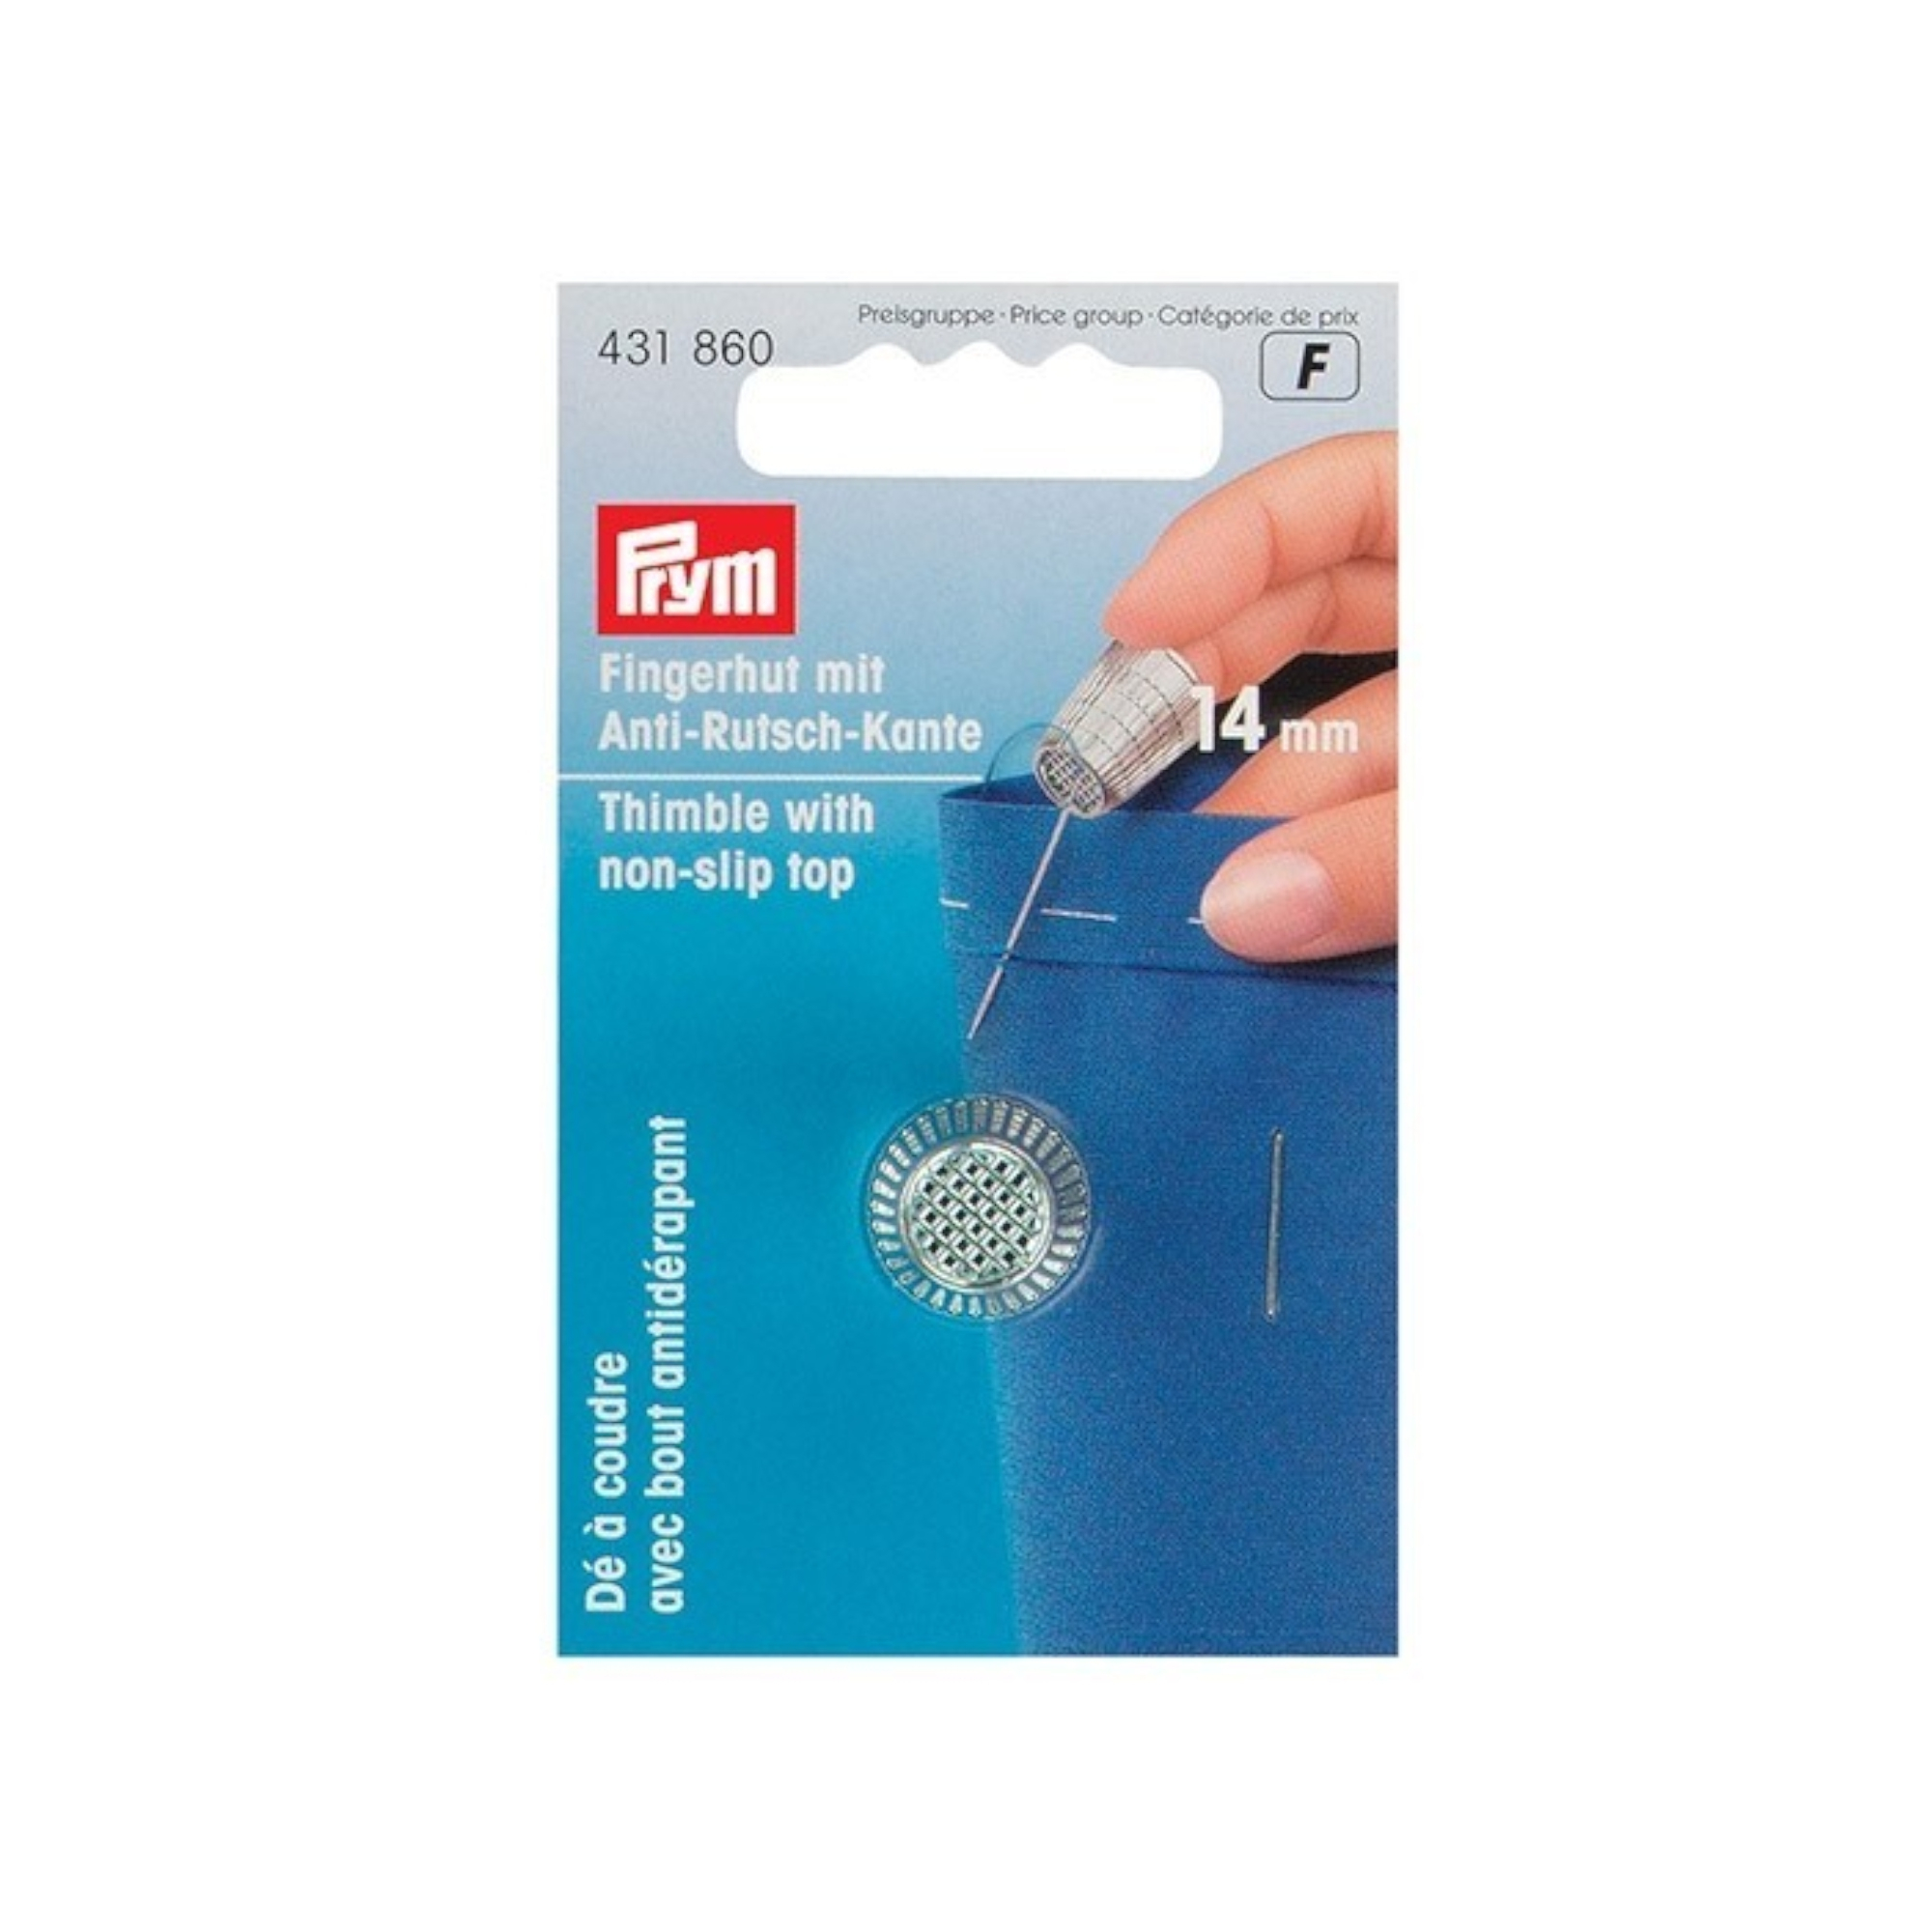 Prym Fingerhut, 14 mm